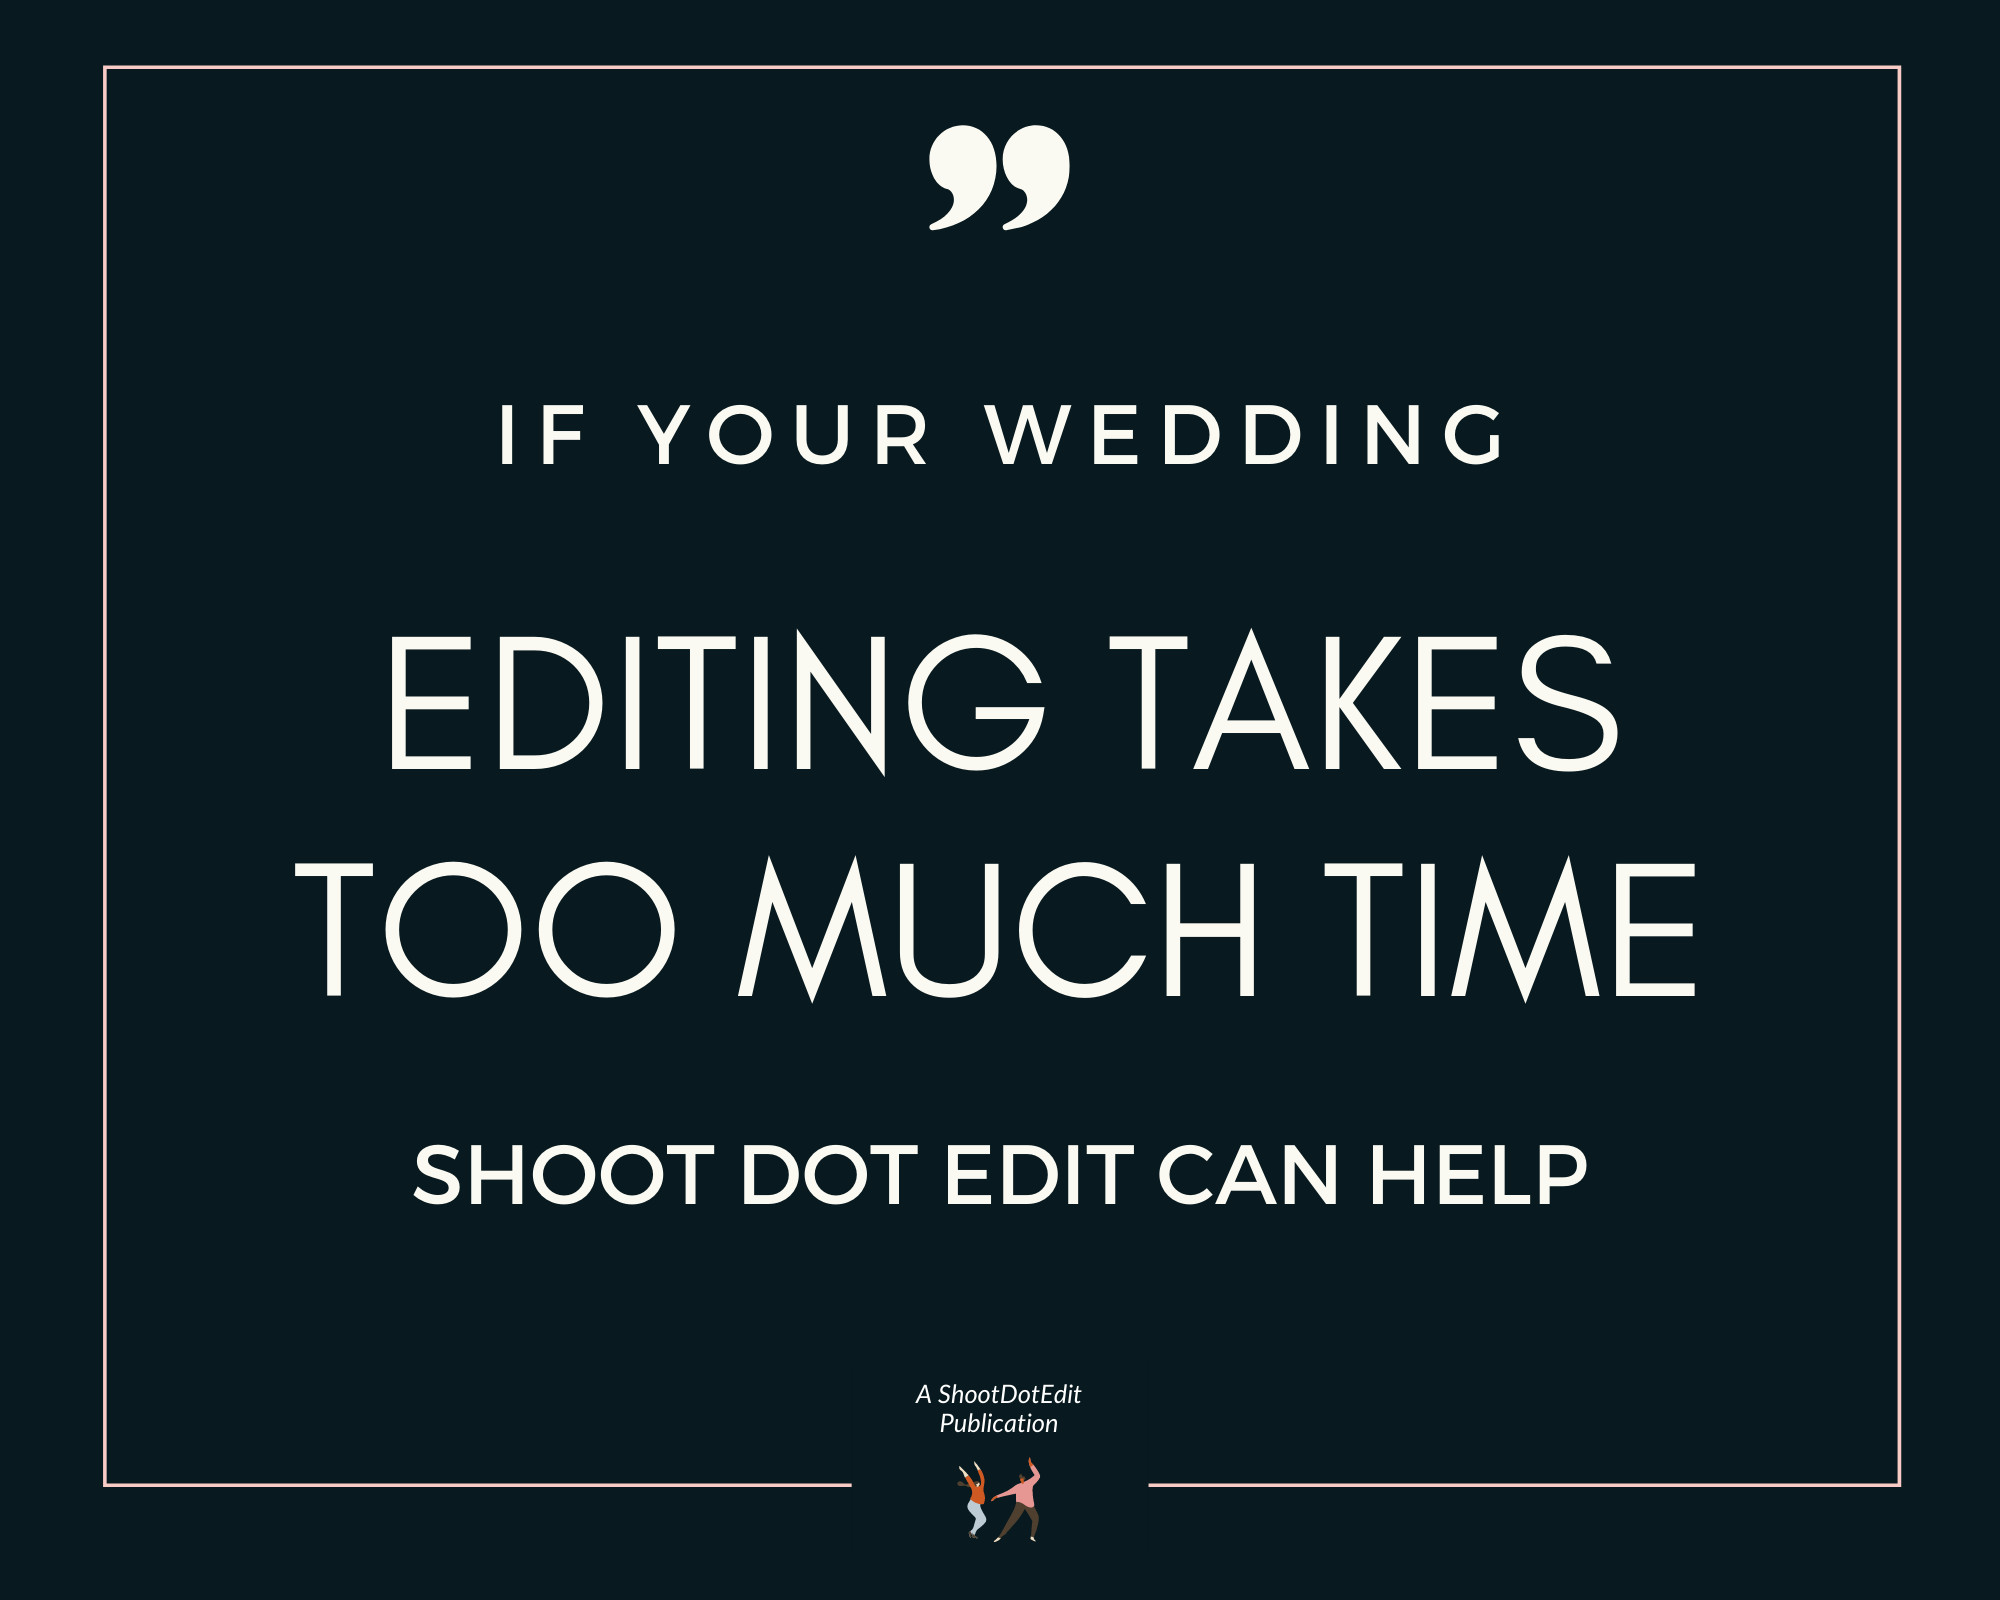 Infographic stating if your wedding editing takes too much time ShootDotEdit can help